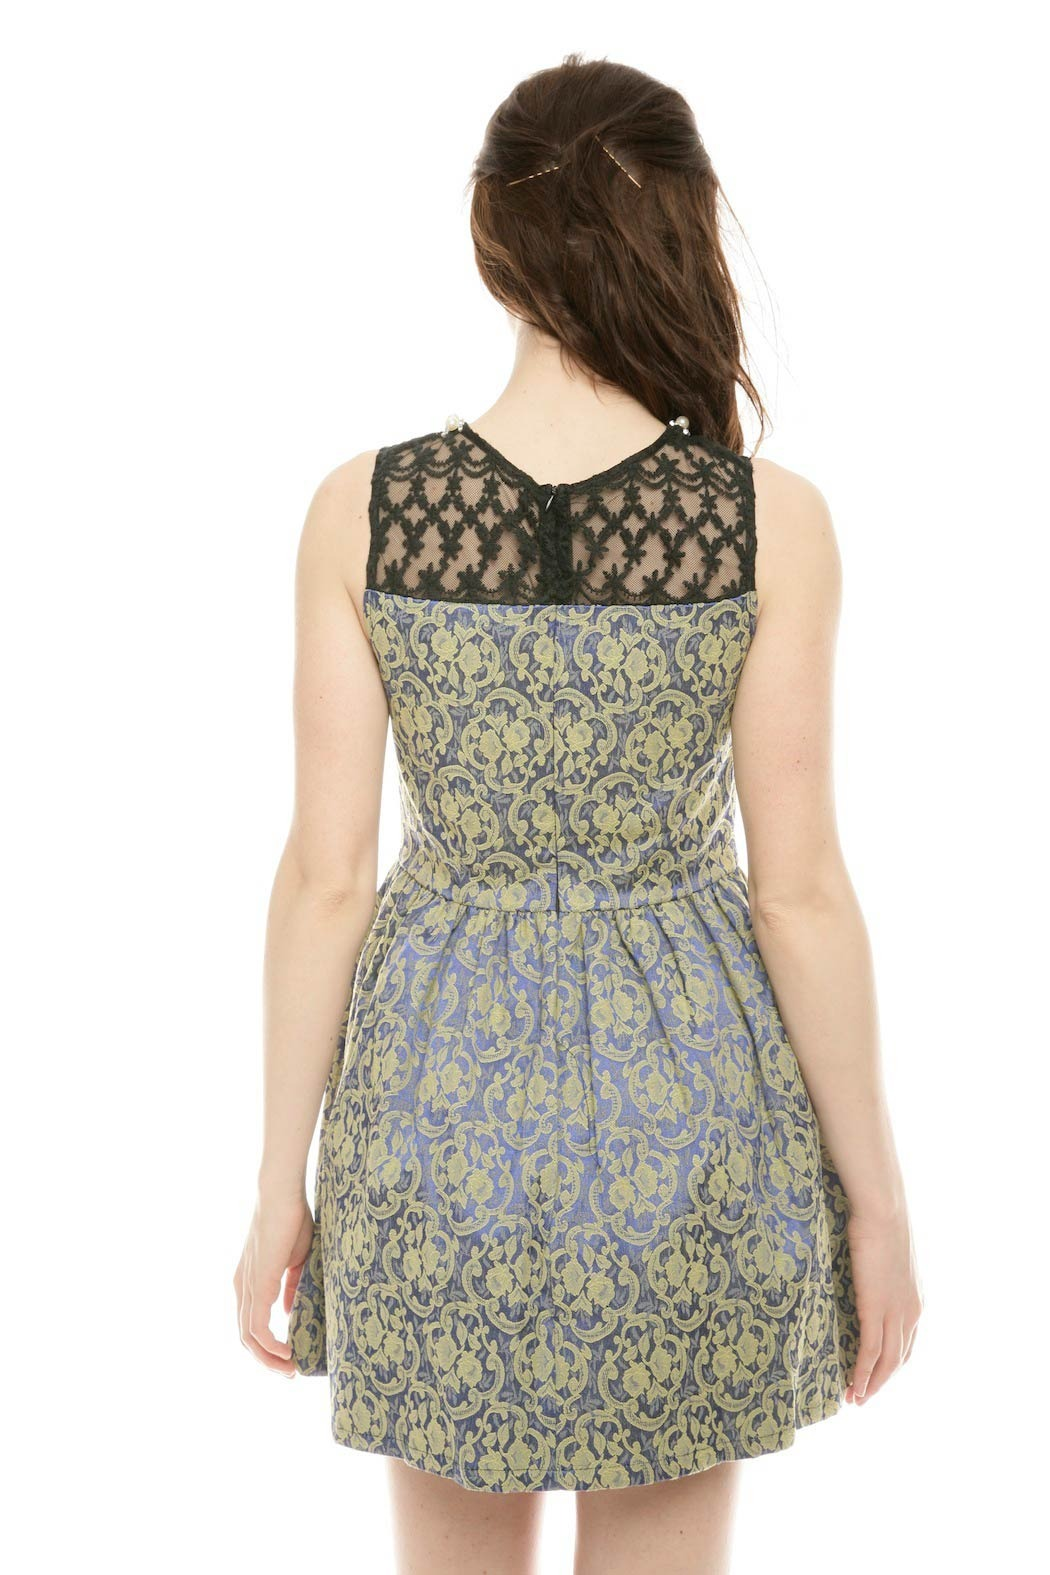 Gracia Pearl Floral Dress - Back Cropped Image